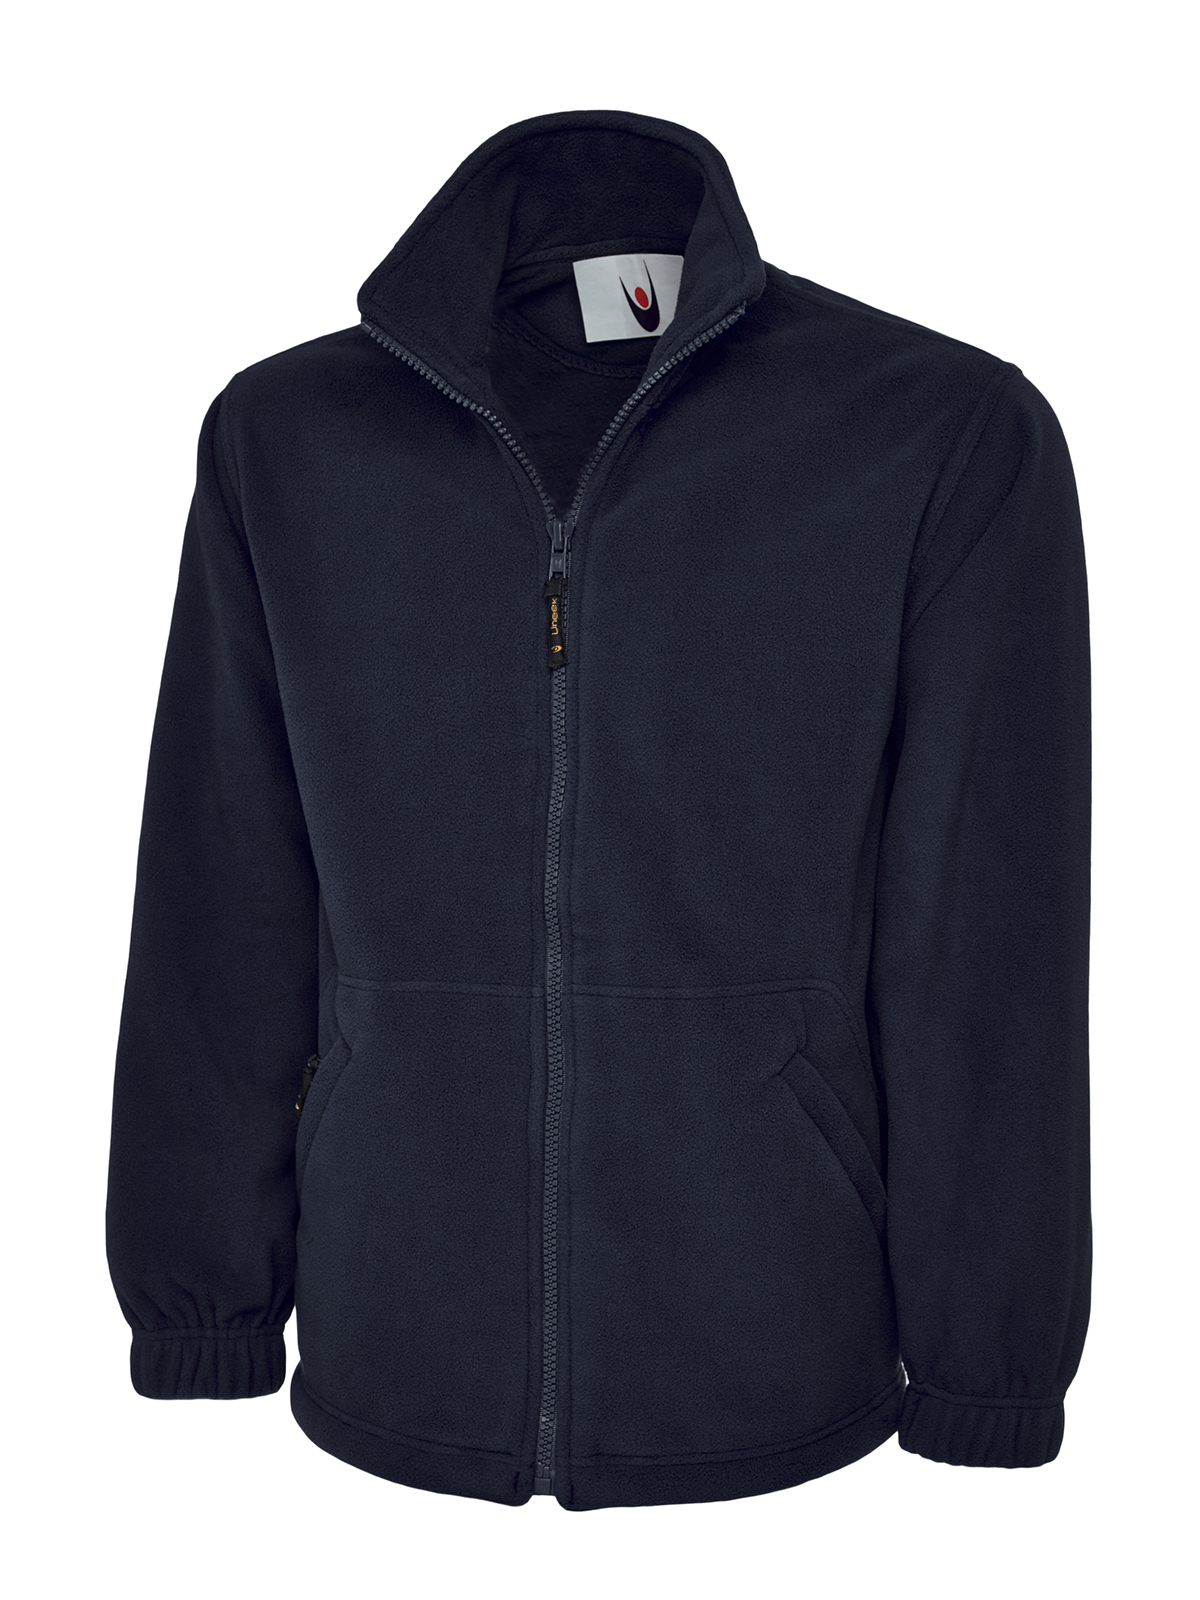 Uneek UC601 Premium Full Zip Fleece Jacket B